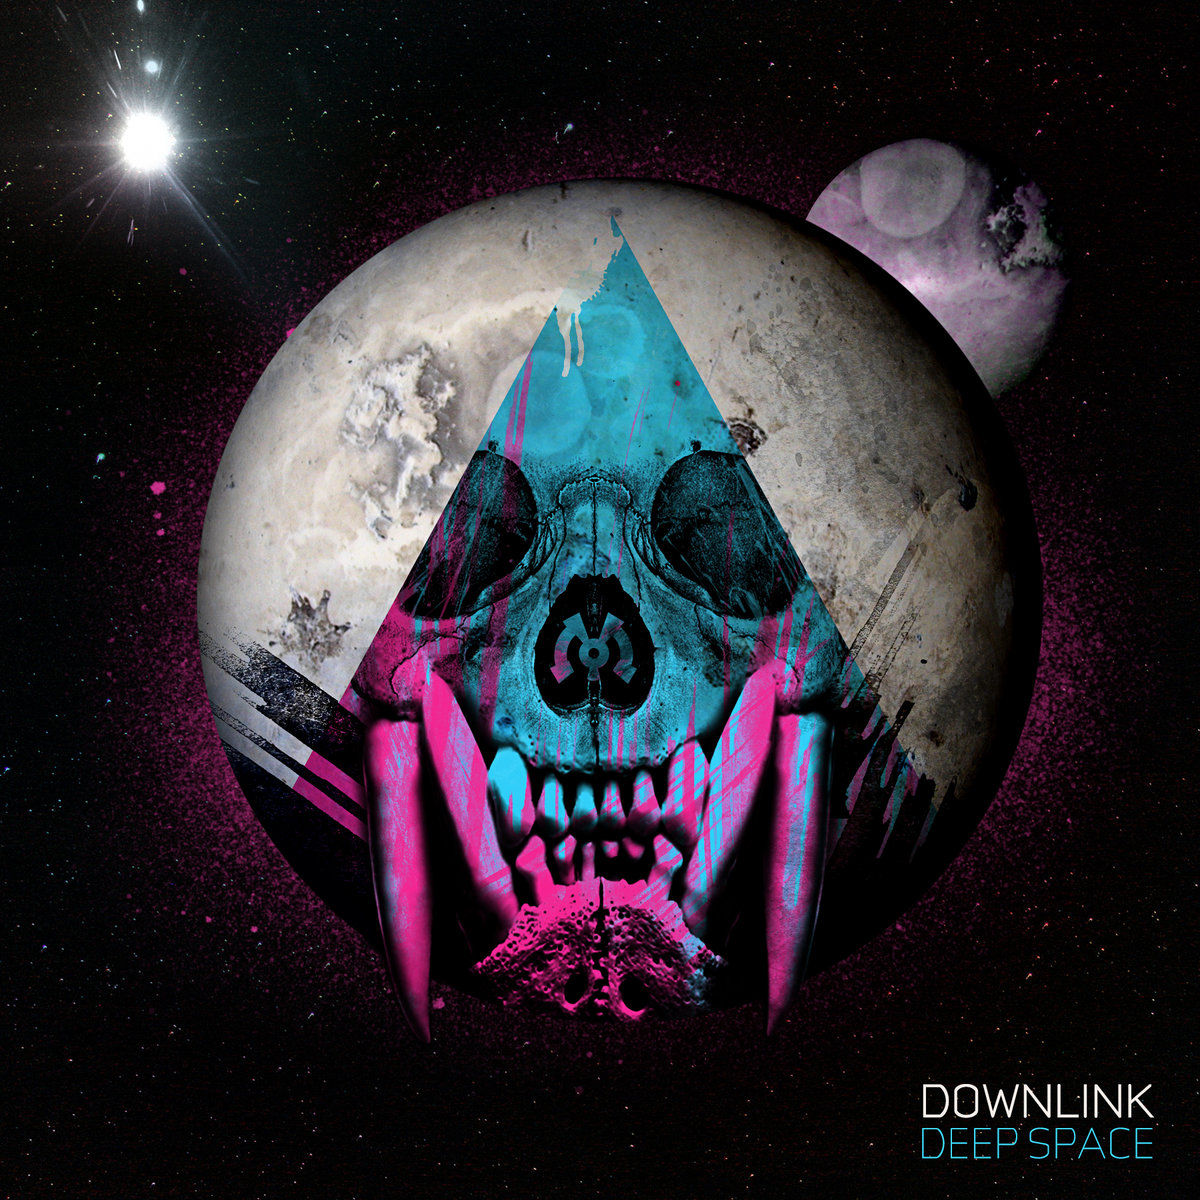 Downlink - Deep Space